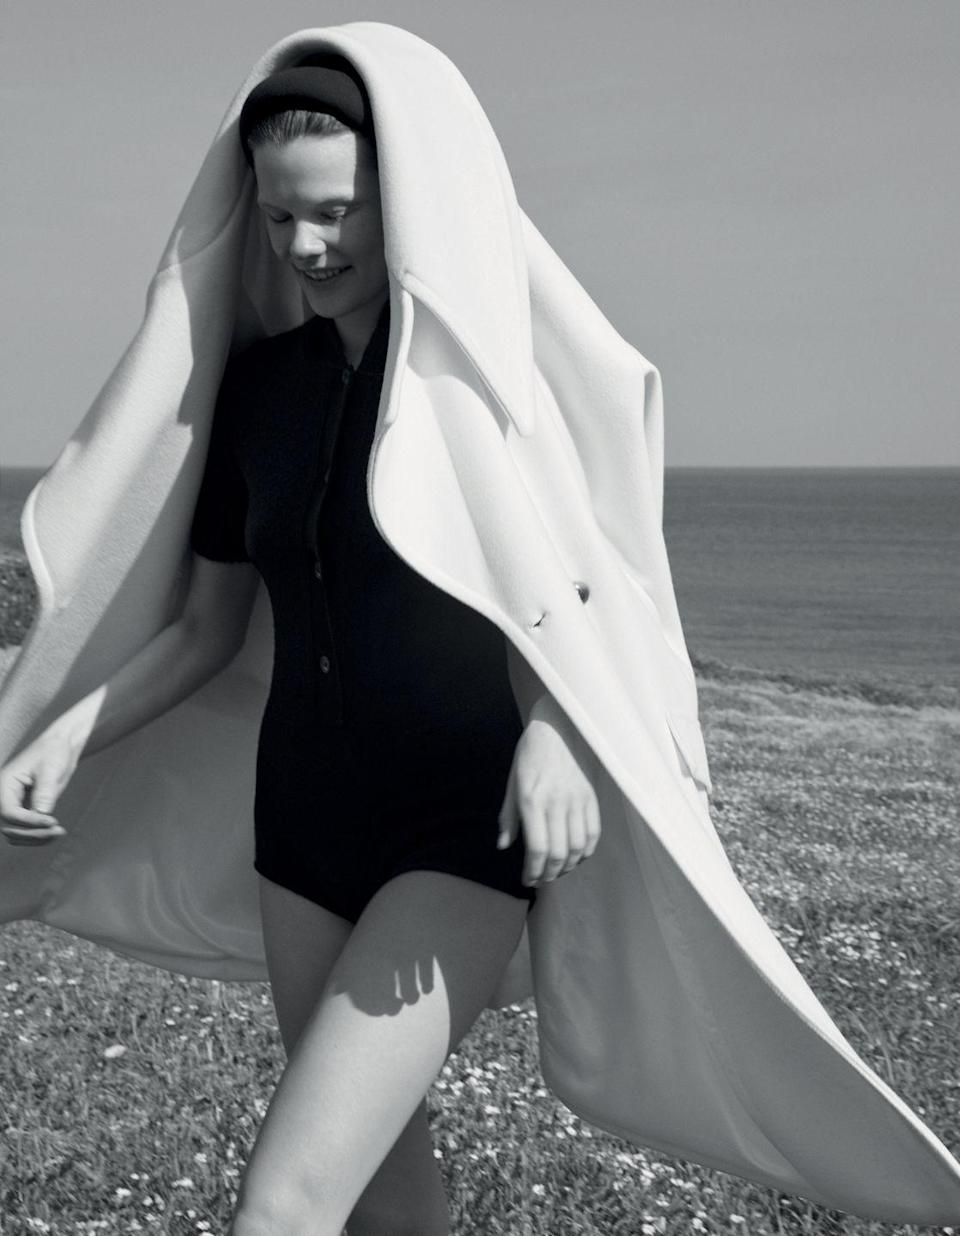 <p>Cappotto con maxi revers, <strong>TWINSET Actitude</strong> (292 euro), romper di maglia, <strong>N°21 by Alessandro Dell'Acqua</strong>, cappello <strong>1 Moncler JW Anderson</strong>.</p>